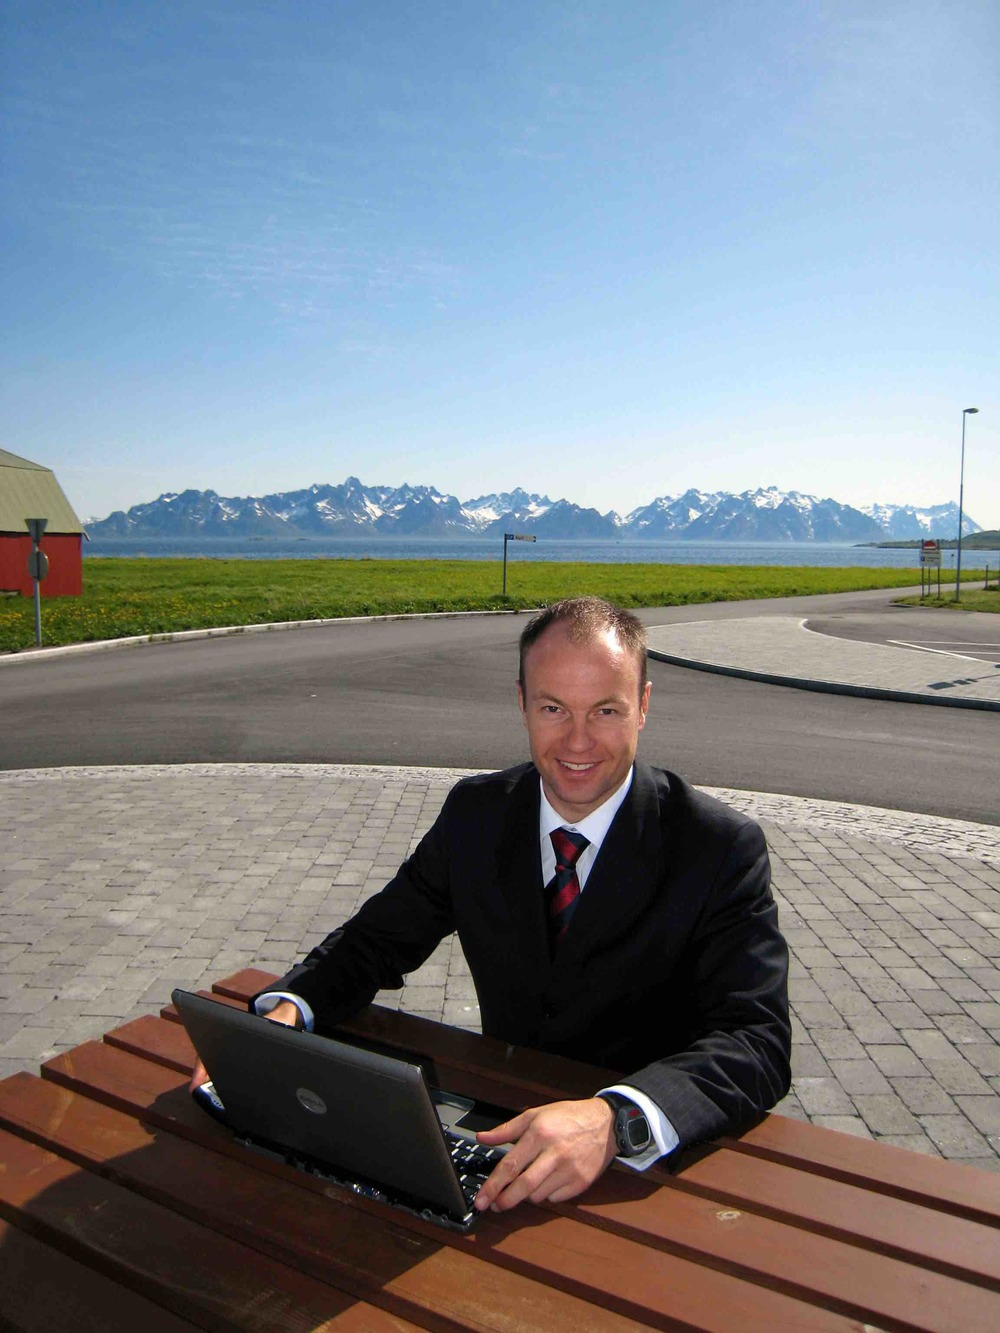 Founder - Keith, back when he had a little hair and worked in Norway. Yes that's an unfashionable Polar watch on the left arm and a Blackberry in the right hand.